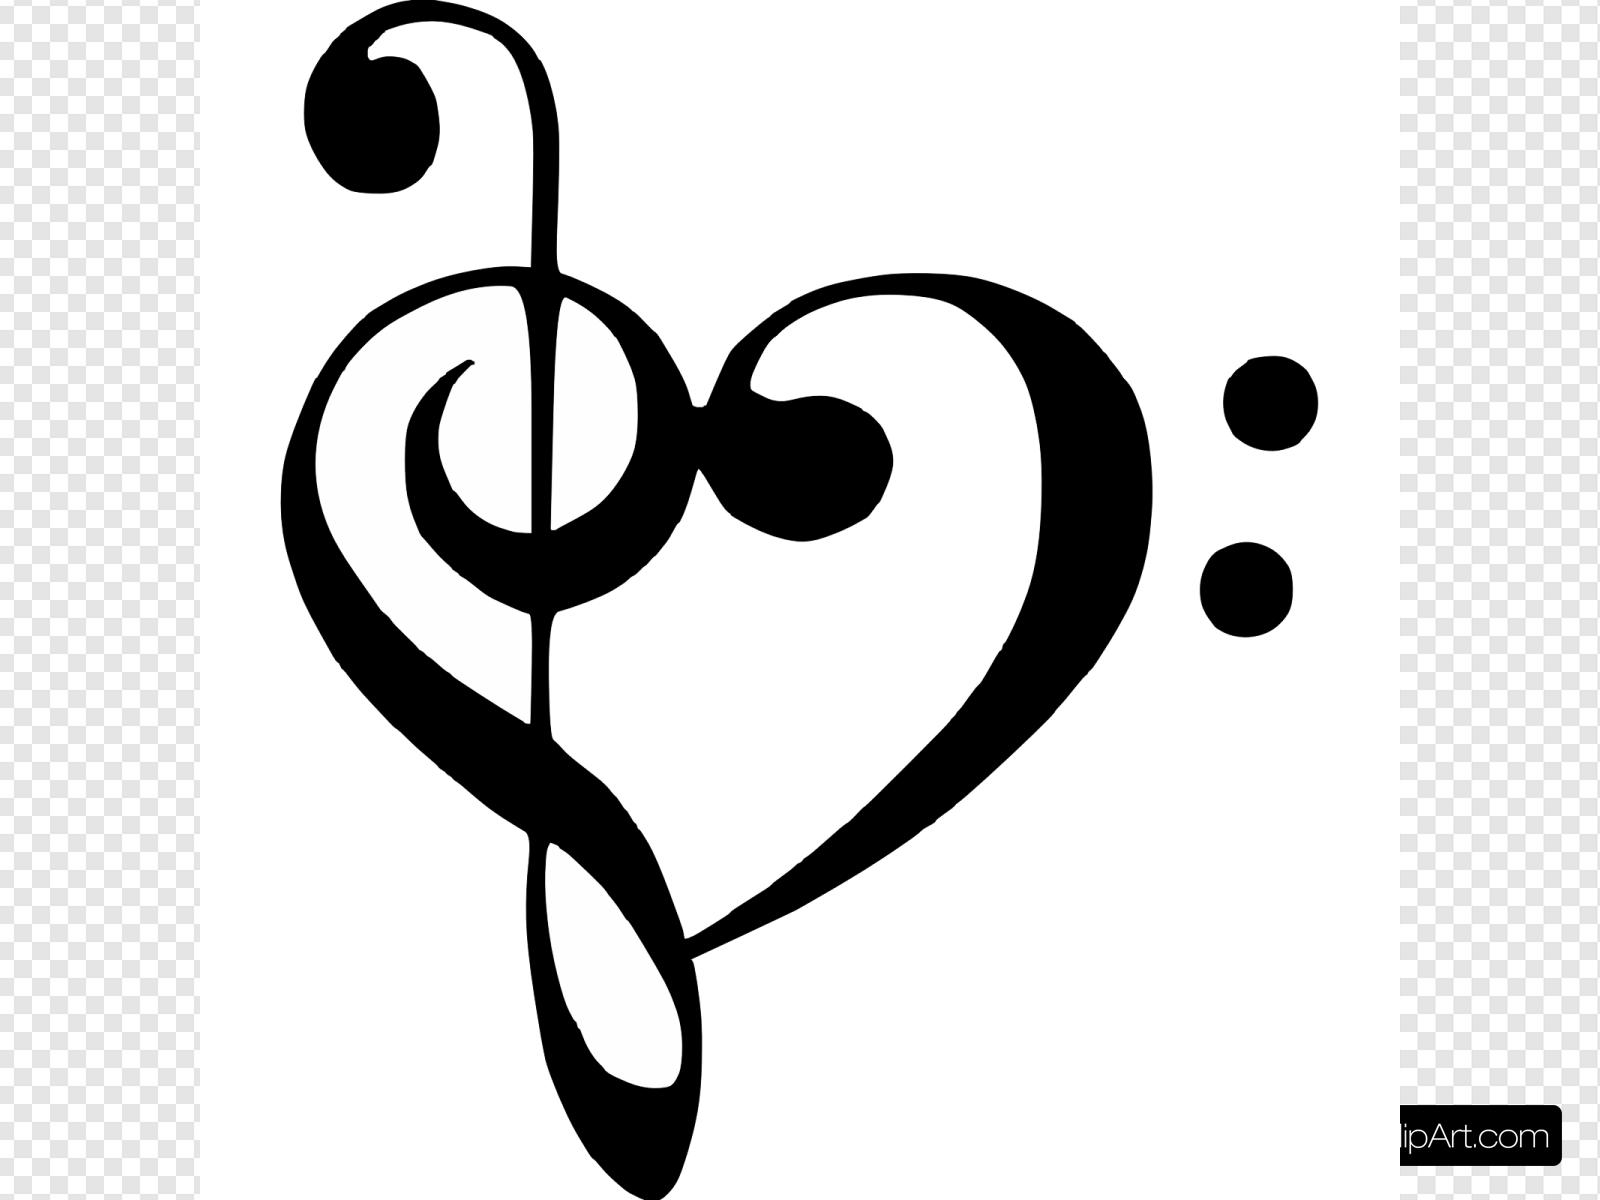 Bass Clef Treble Clef Heart Clip art, Icon and SVG.